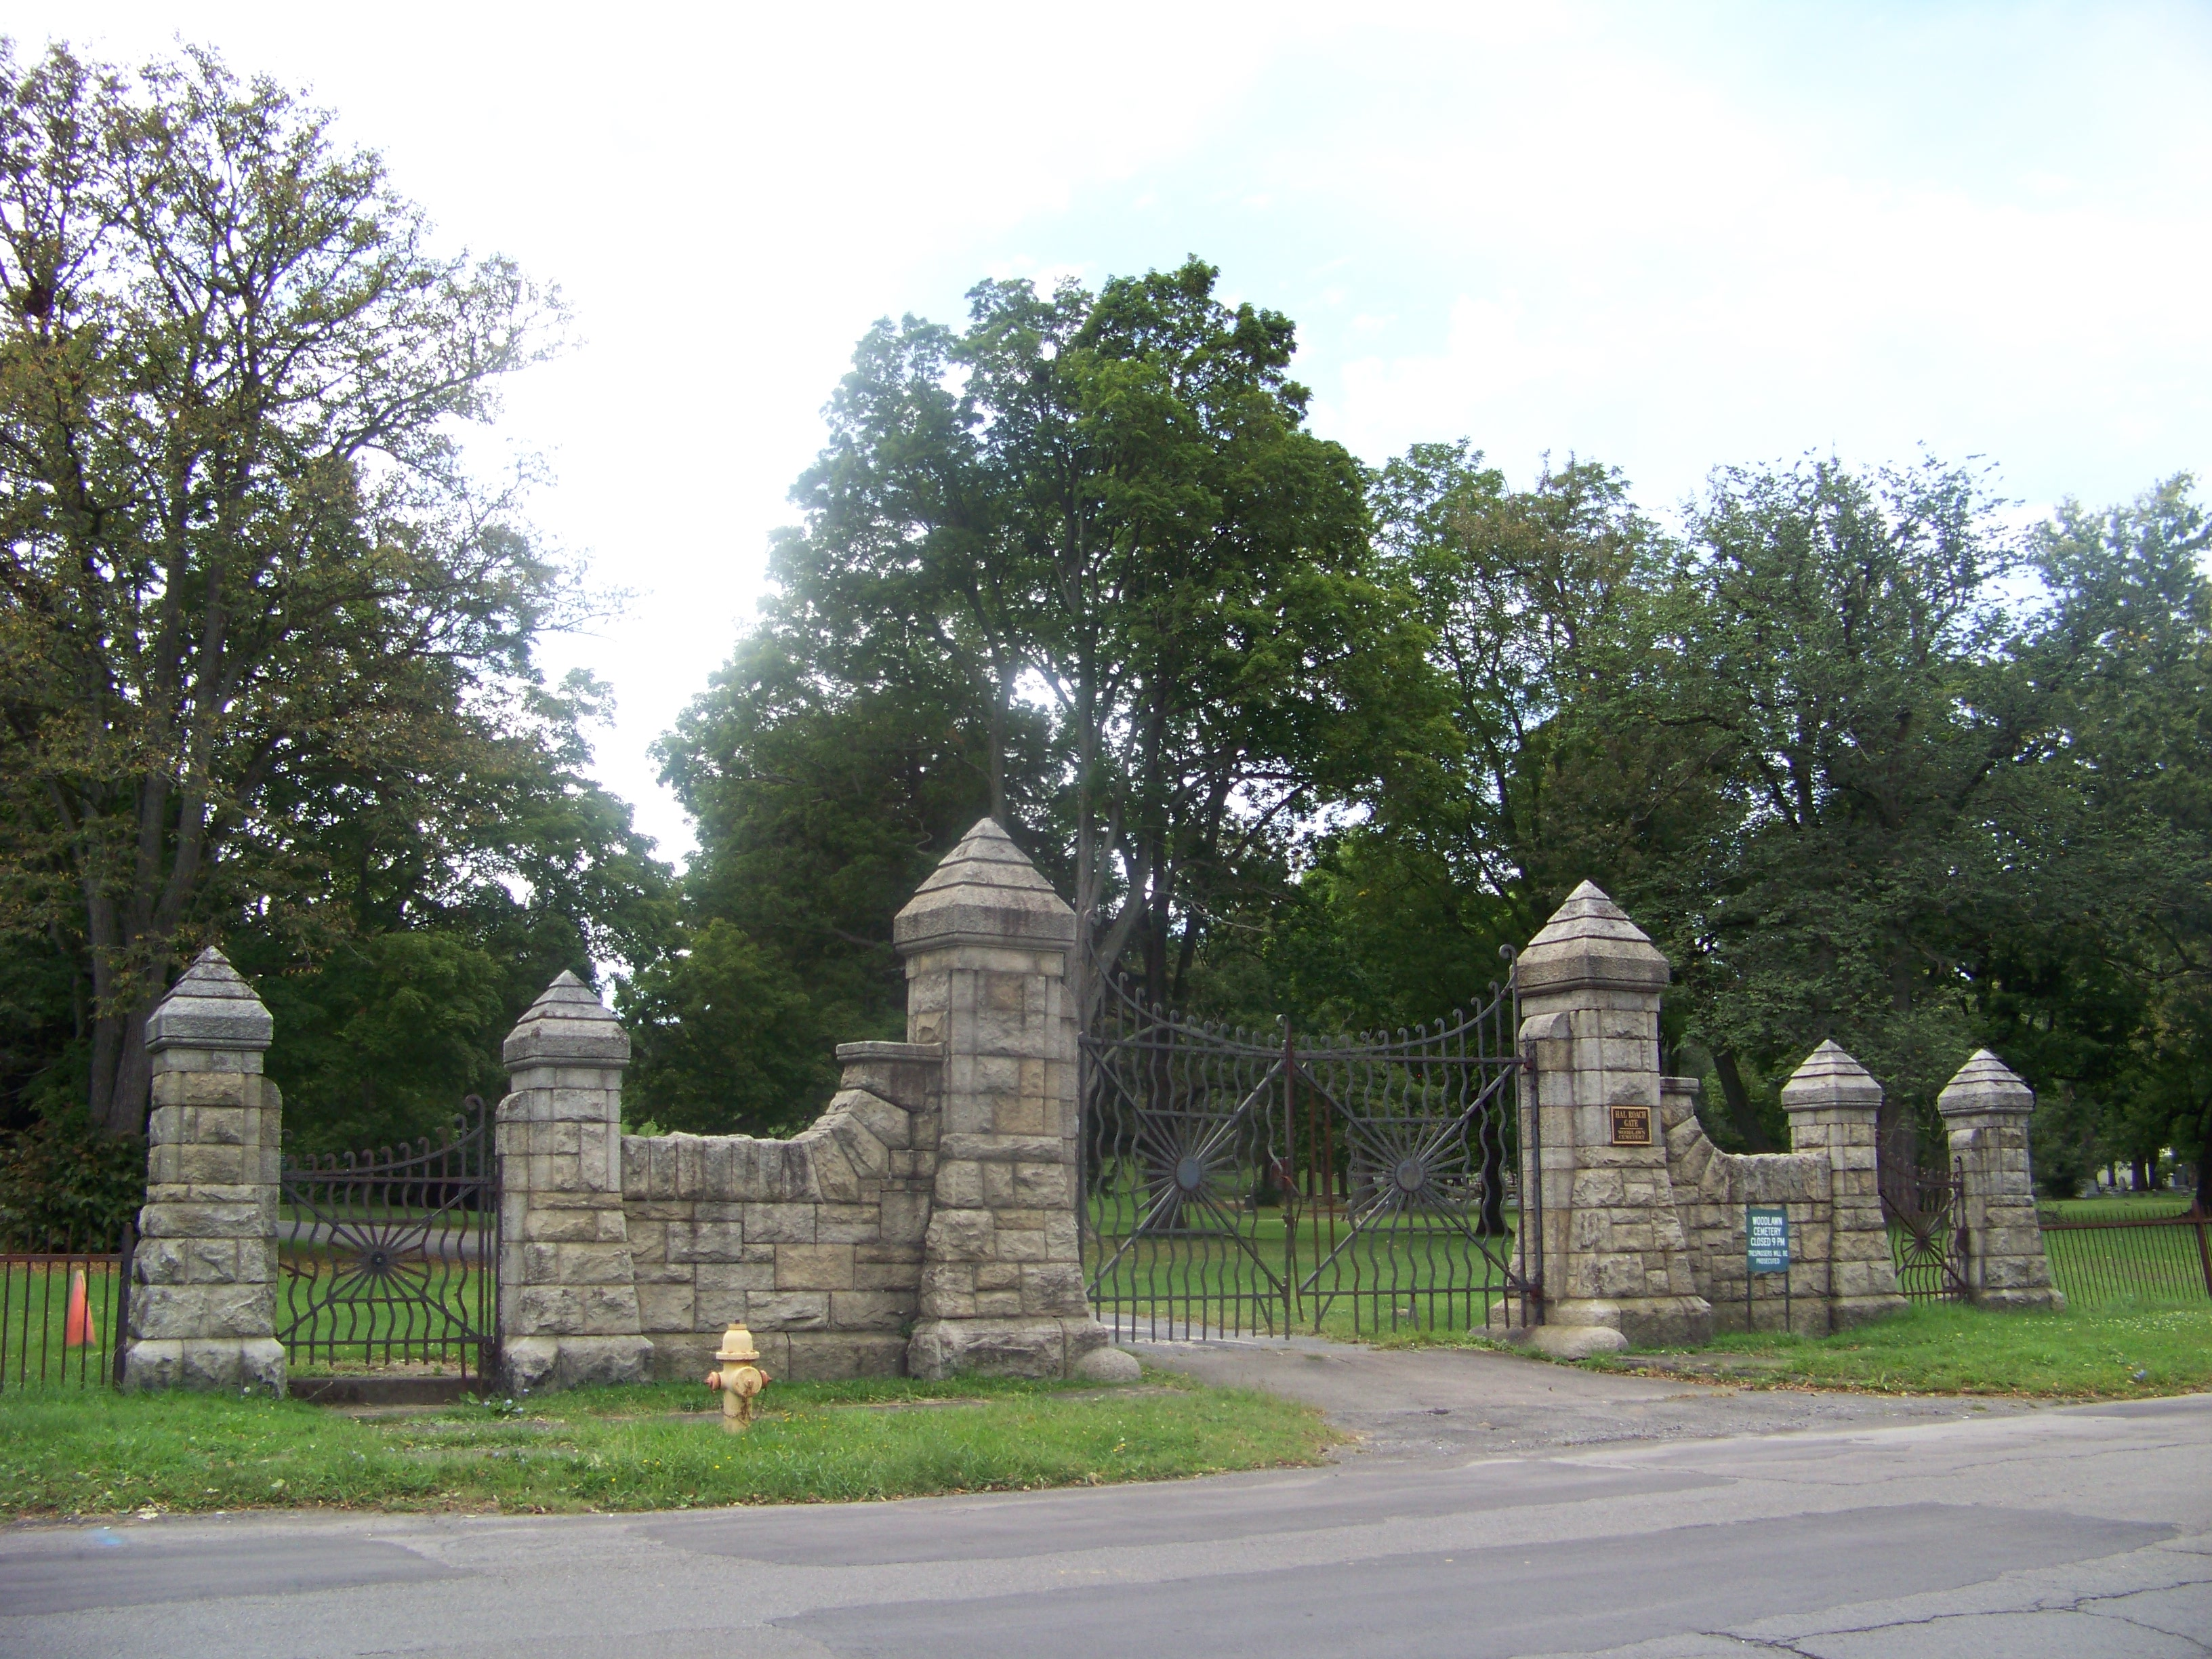 One of the gates used to enter or exit the Woodlawn Cemetery.